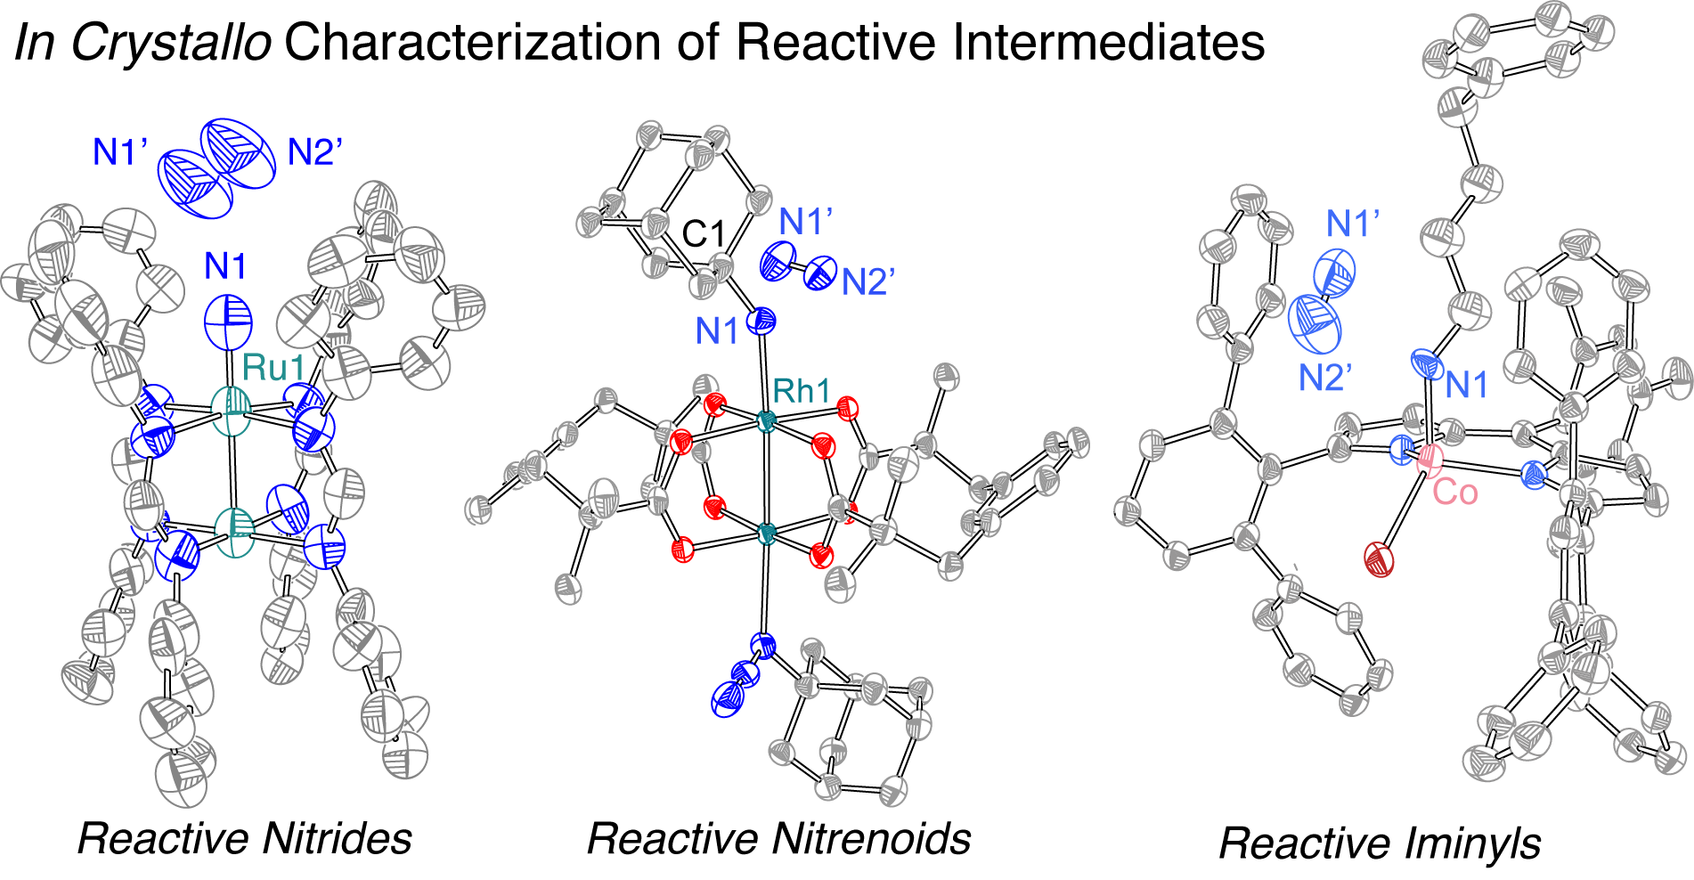 Crystallography of Reactive Intermediates